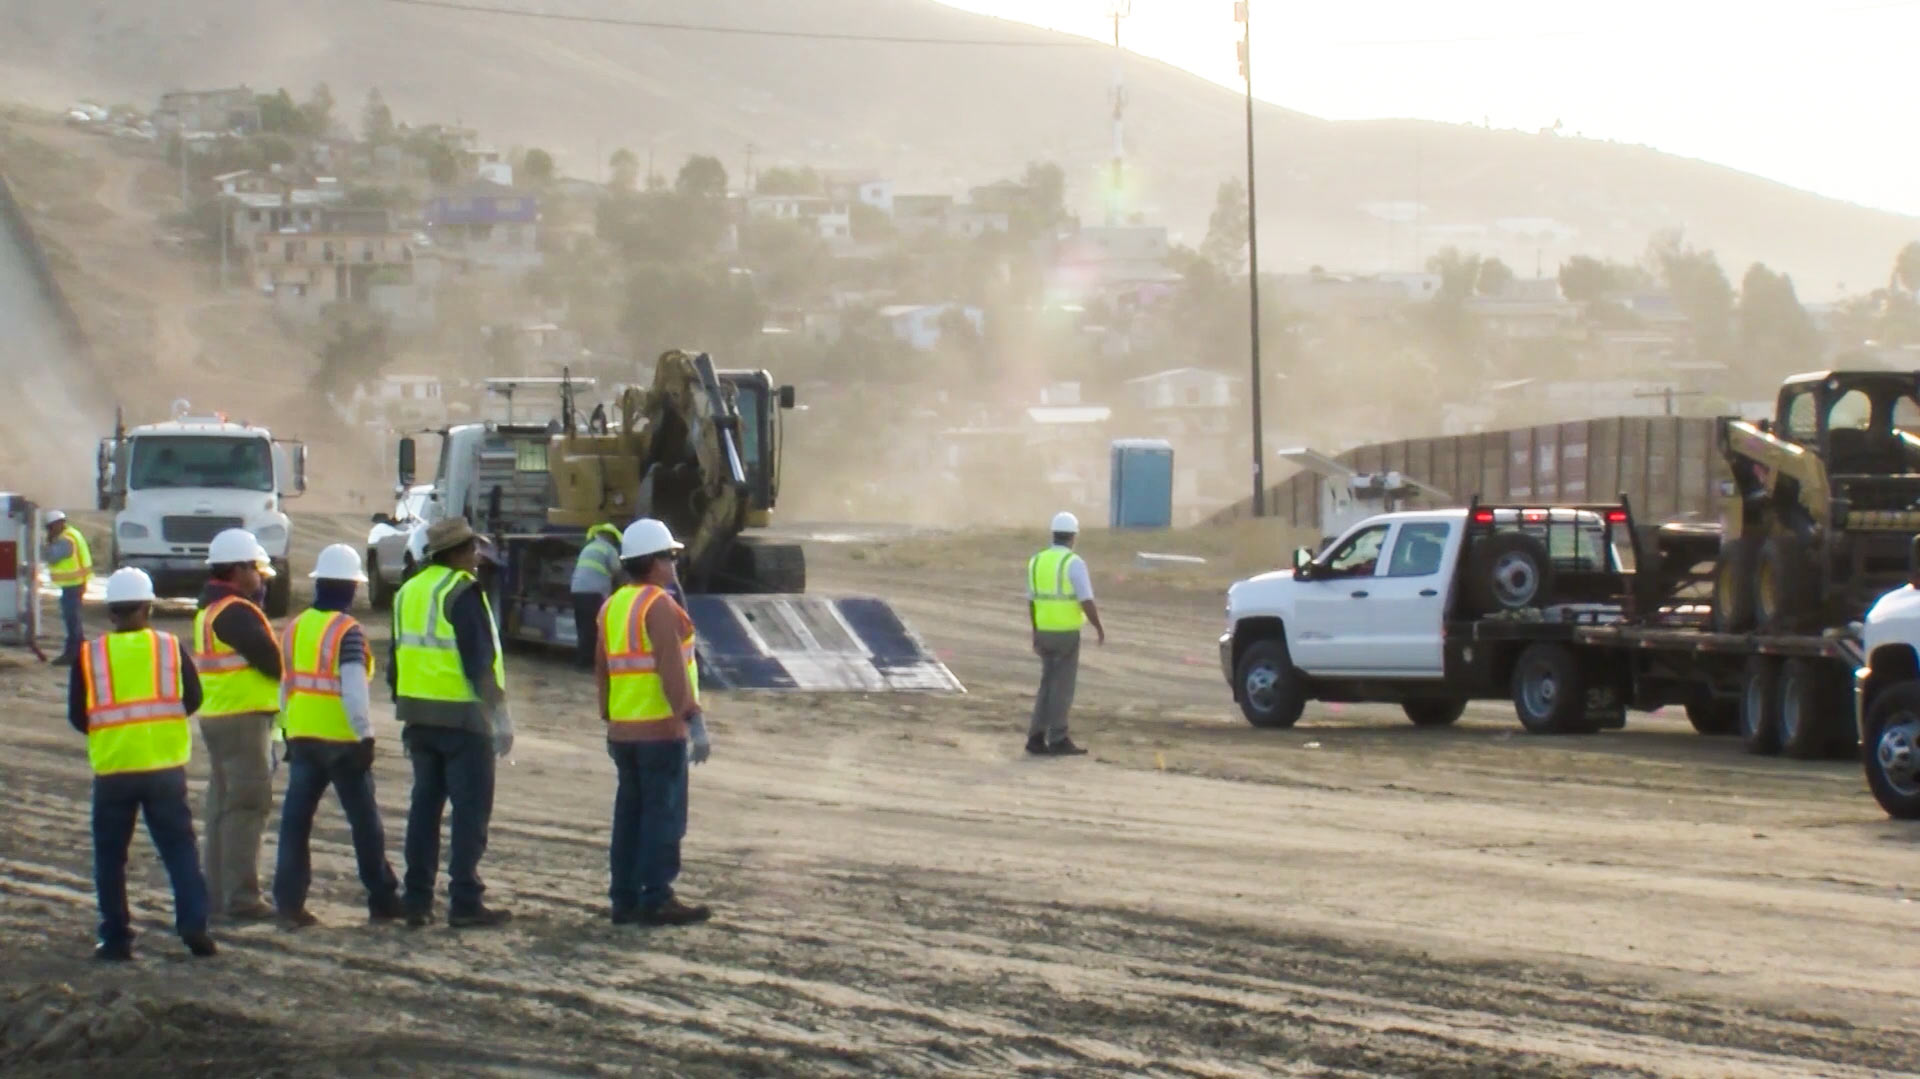 Still image from a video released by the public relations department of Customs and Border Protection showing the start to construction of border wall prototypes.